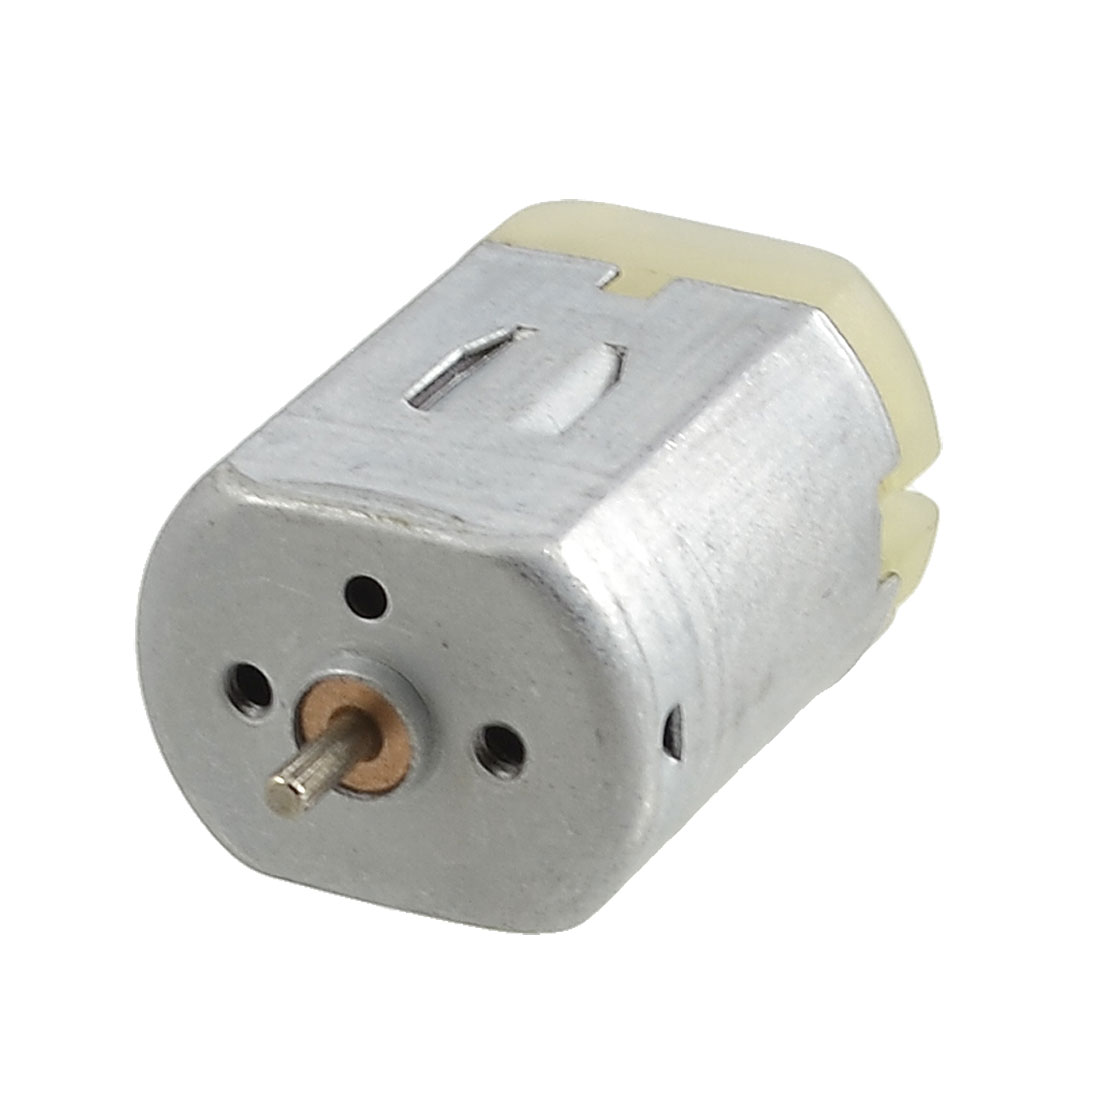 Electric Toys 0.4A 2.8W DC 12V 36000RPM Output Speed Small Motor